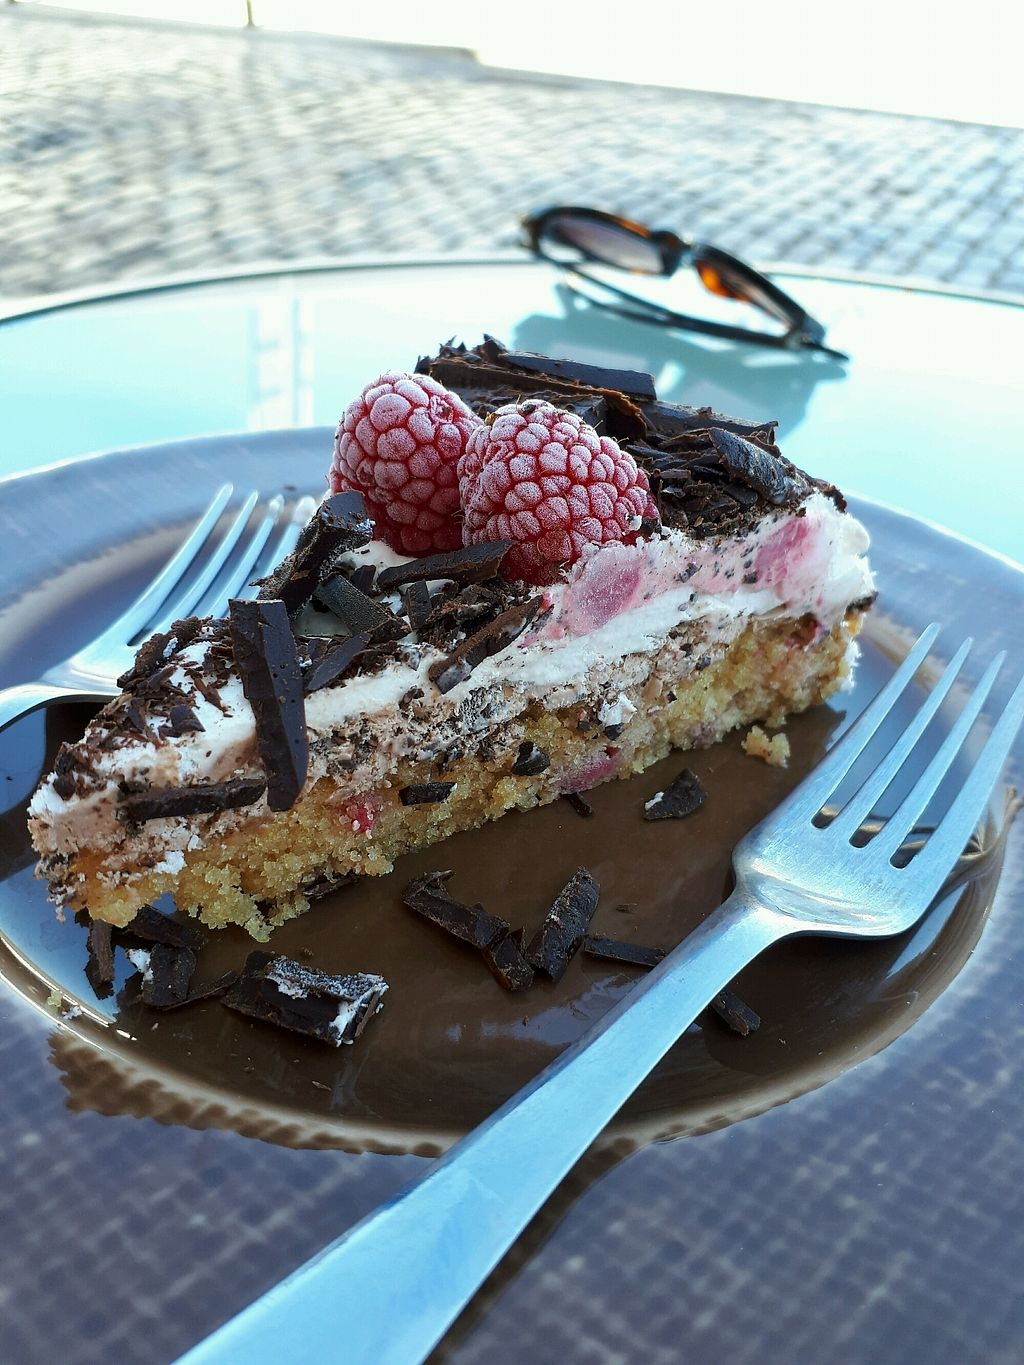 """Photo of Mandala  by <a href=""""/members/profile/KellyDean"""">KellyDean</a> <br/>chocolate raspberry cream cake <br/> October 6, 2017  - <a href='/contact/abuse/image/80570/312289'>Report</a>"""